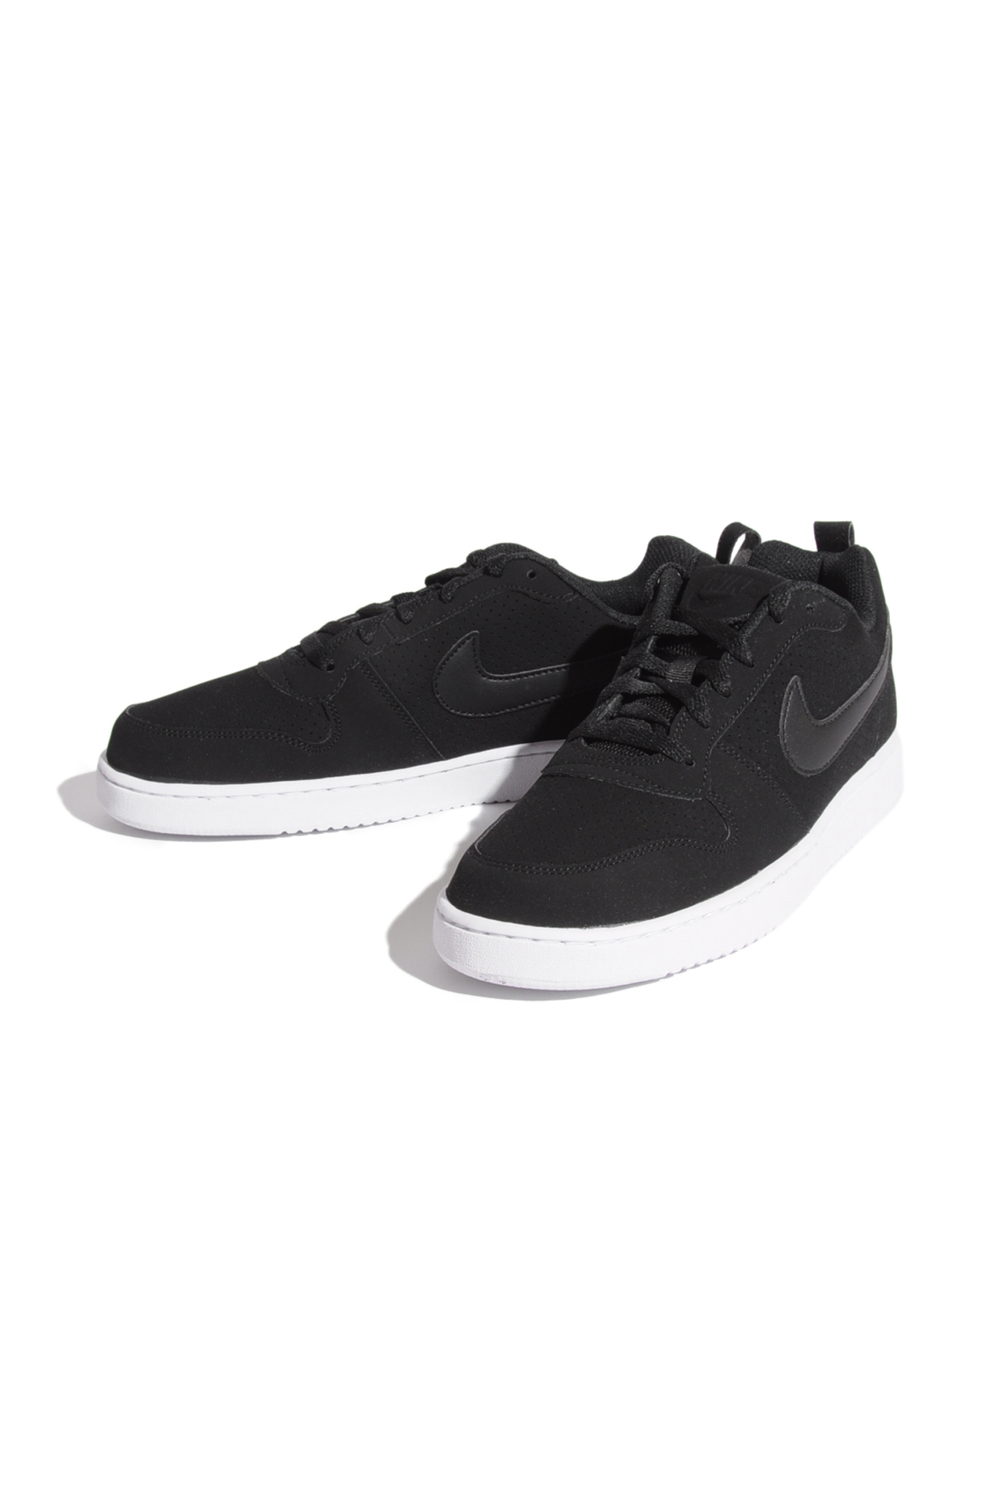 画像1: 【NIKE】WMNS NIKE COURT BOROUGH LOW SL (1)